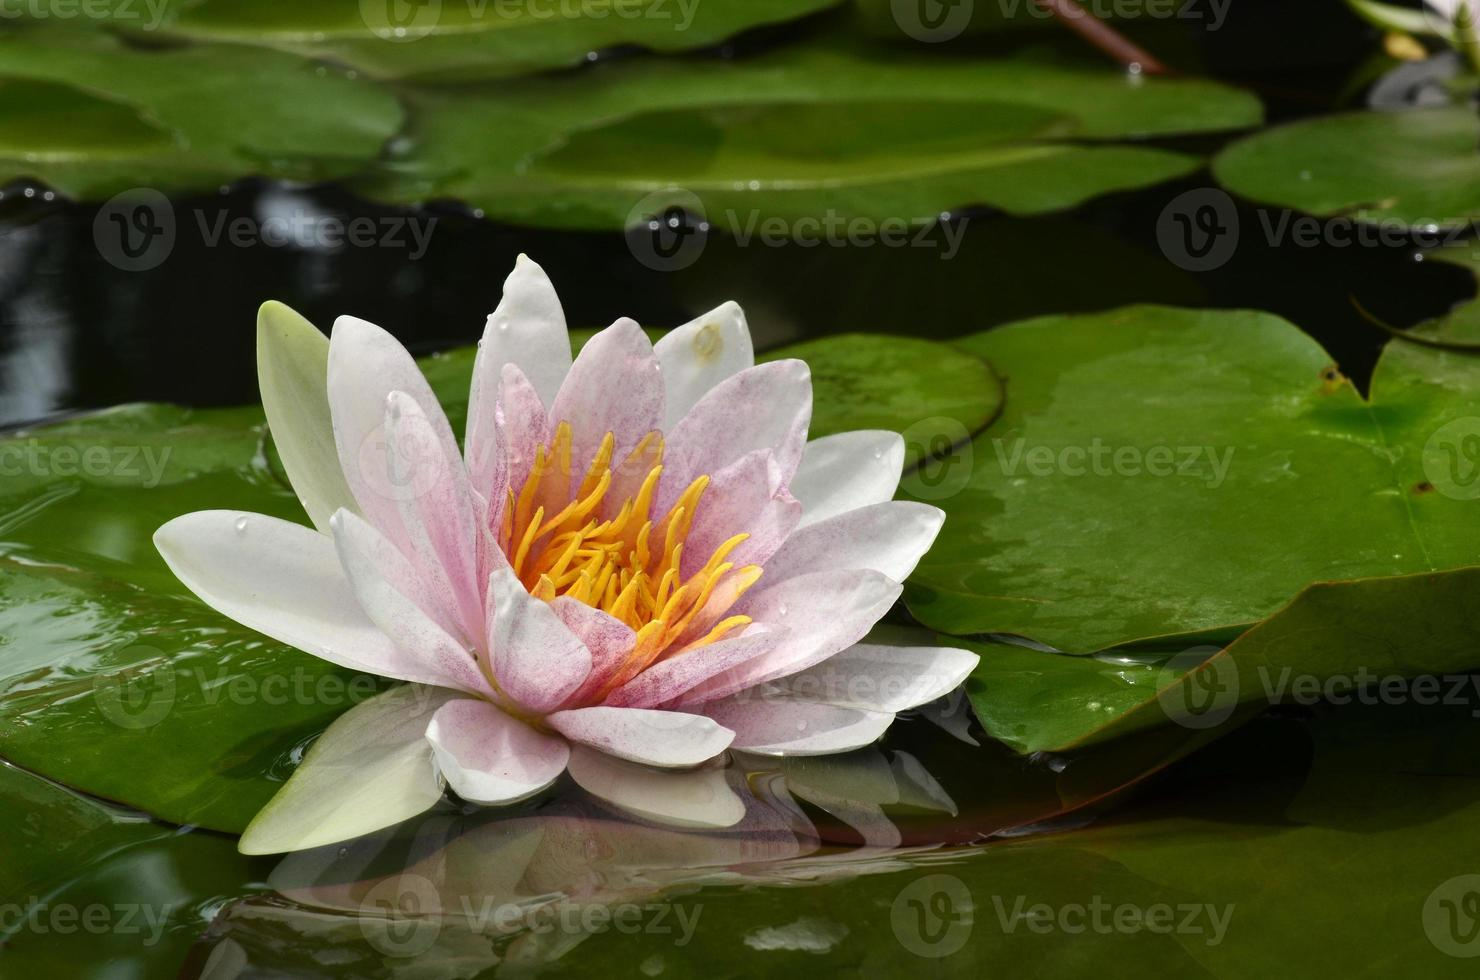 Lotus flower expose to the light with green leafs surrounding photo